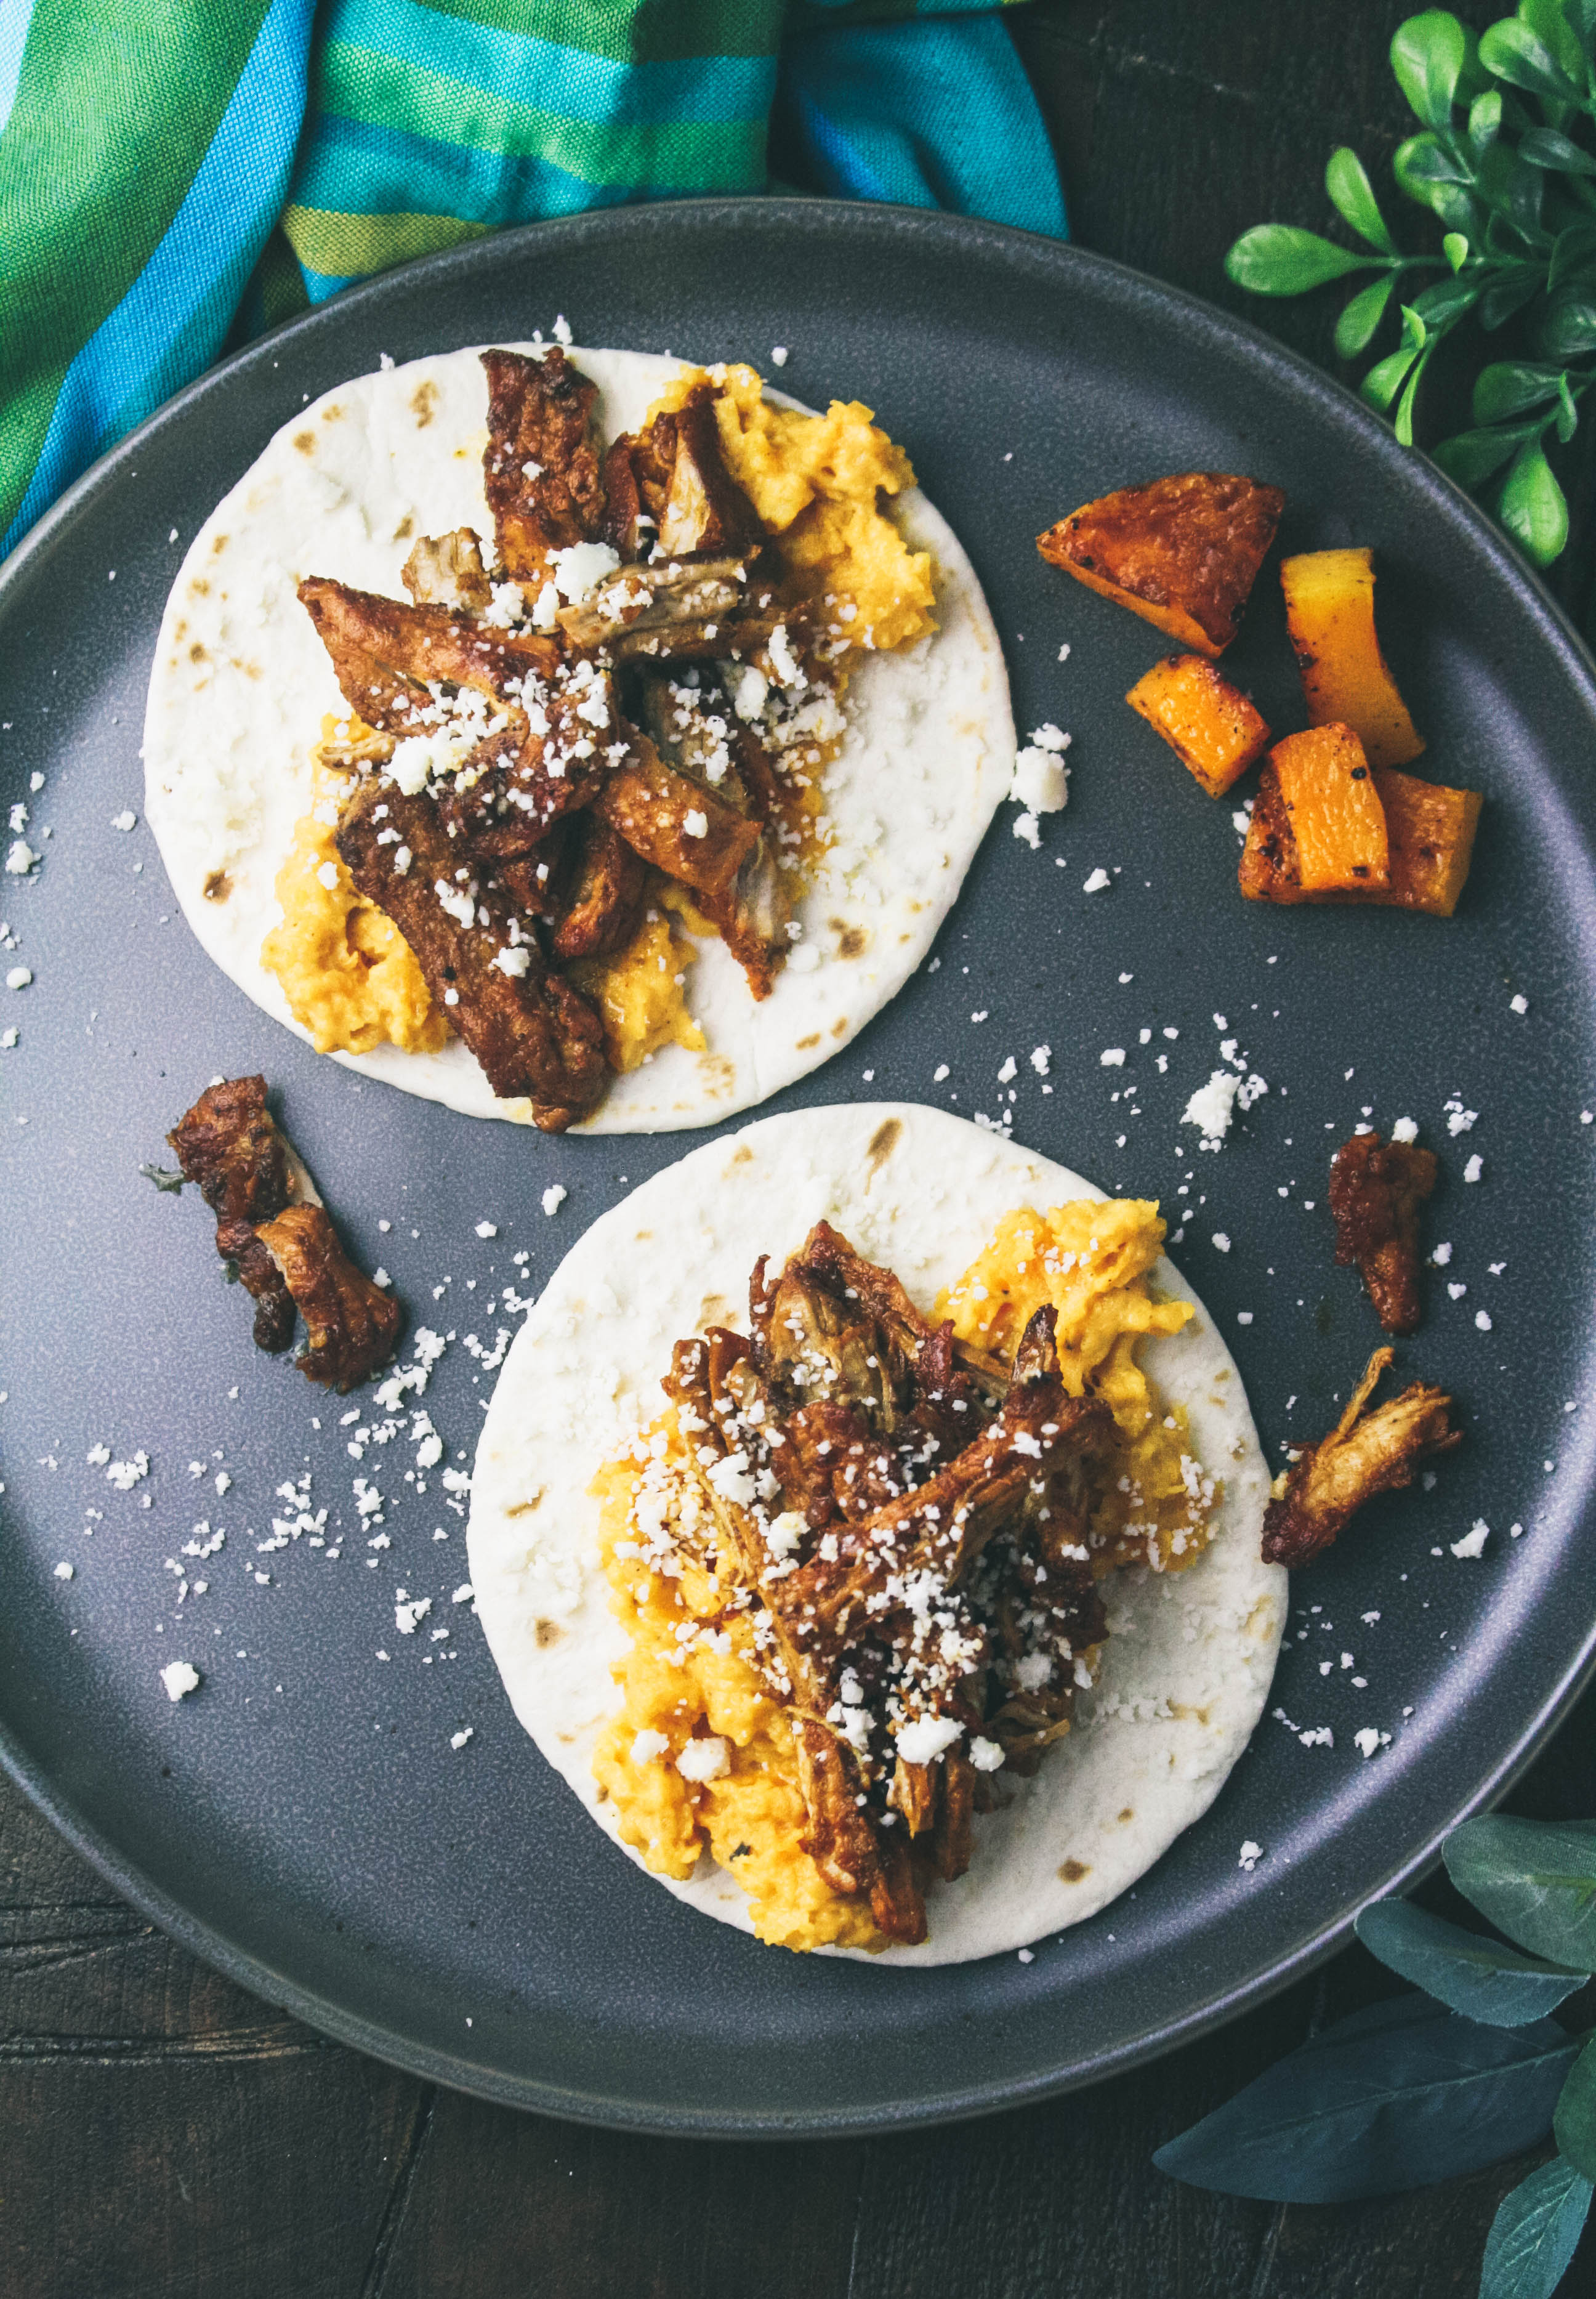 Pork Carnitas Tacos with Butternut Squash Puree are a delightful dinner option. Make Pork Carnitas Tacos with Butternut Squash Puree for your next dinner.